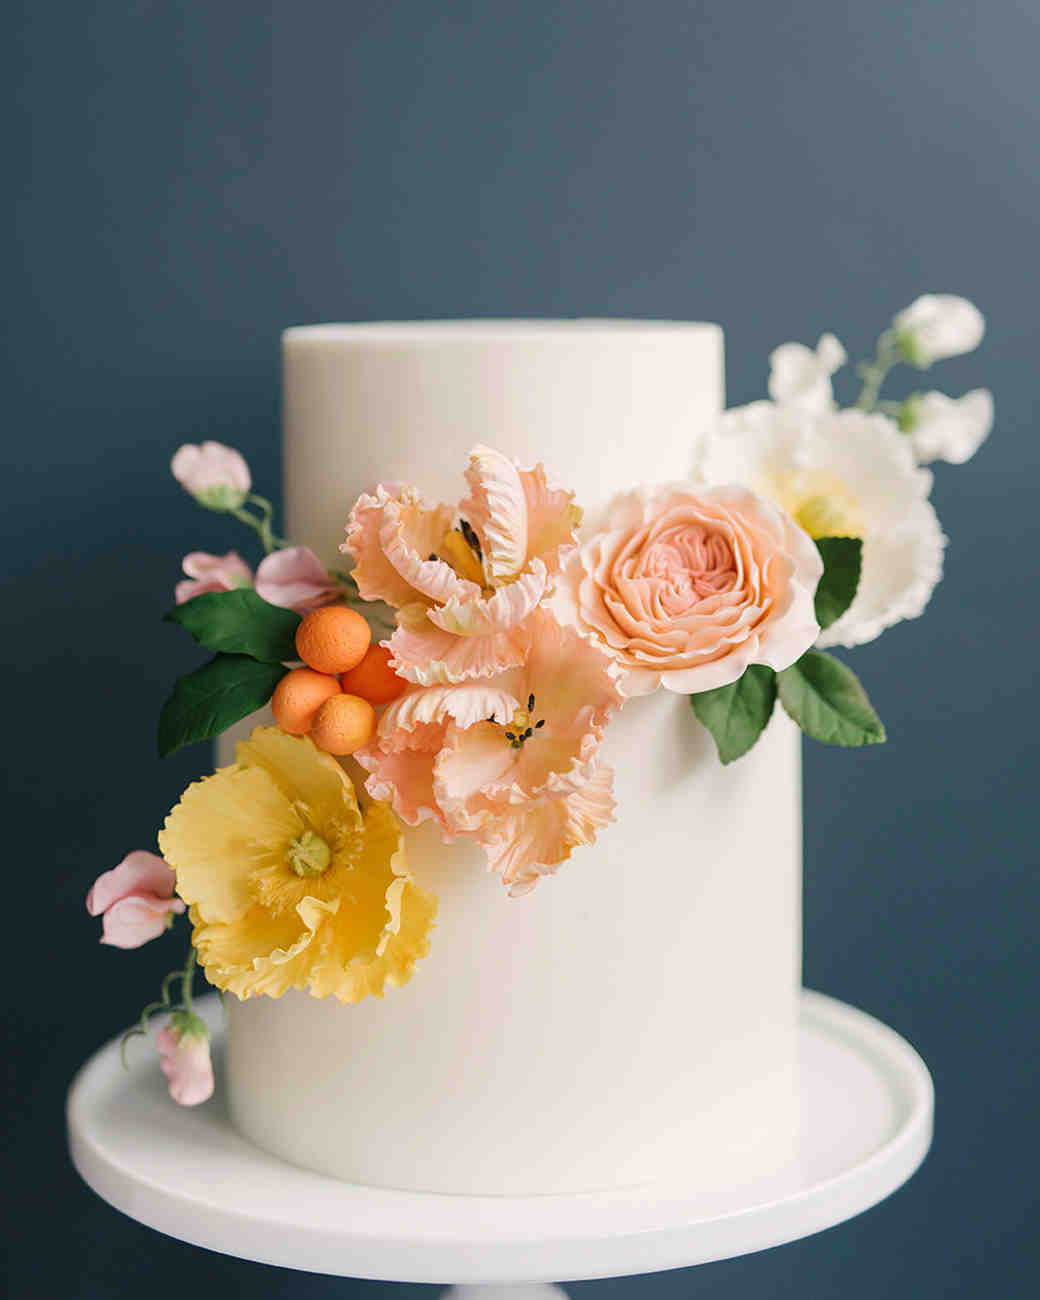 45 Wedding Cakes With Sugar Flowers That Look Stunningly: A Sweet Guide To Choosing A Frosting For Your Wedding Cake